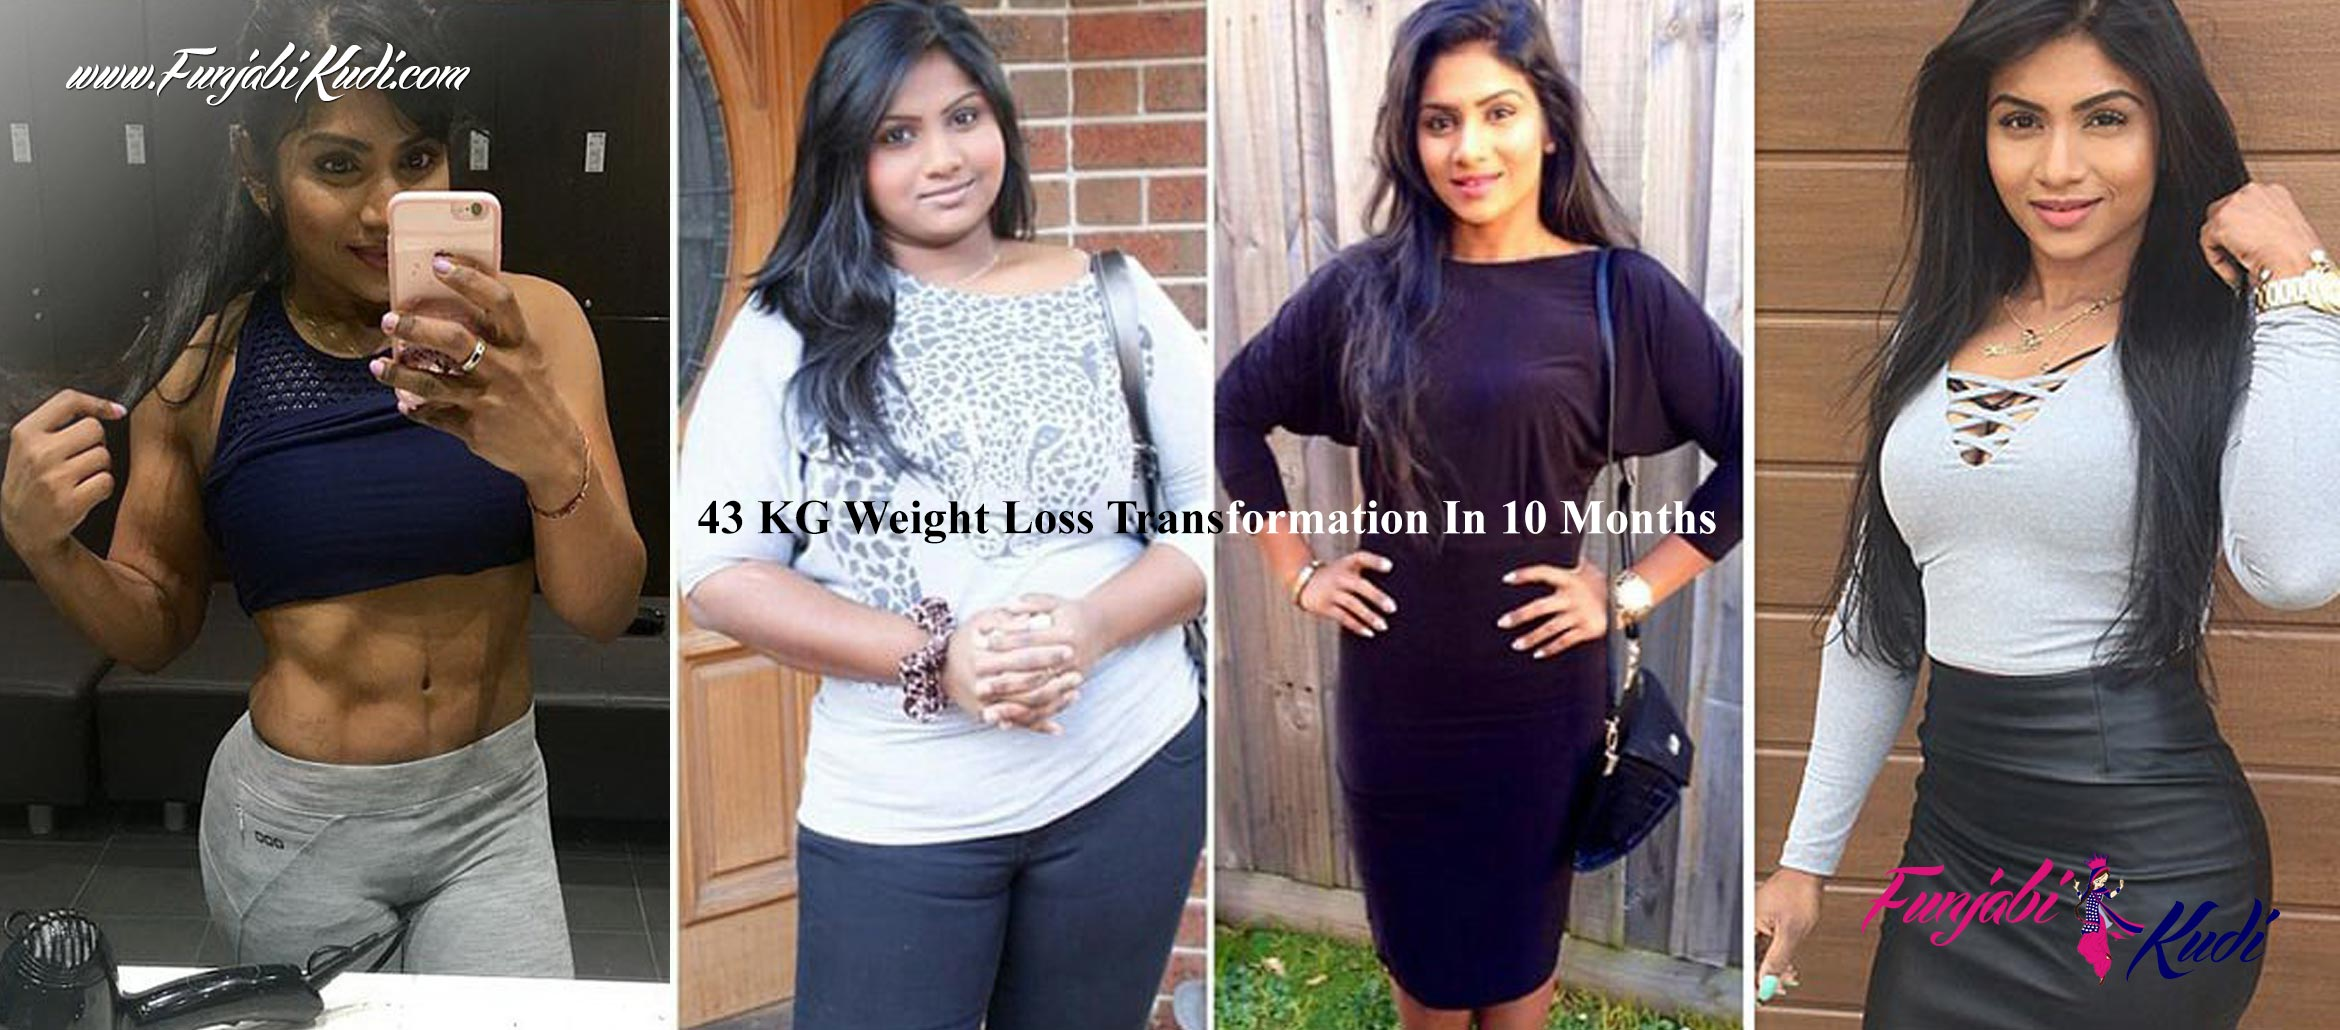 This Woman's 43 KG Weight Loss Transformation In 10 Months ...